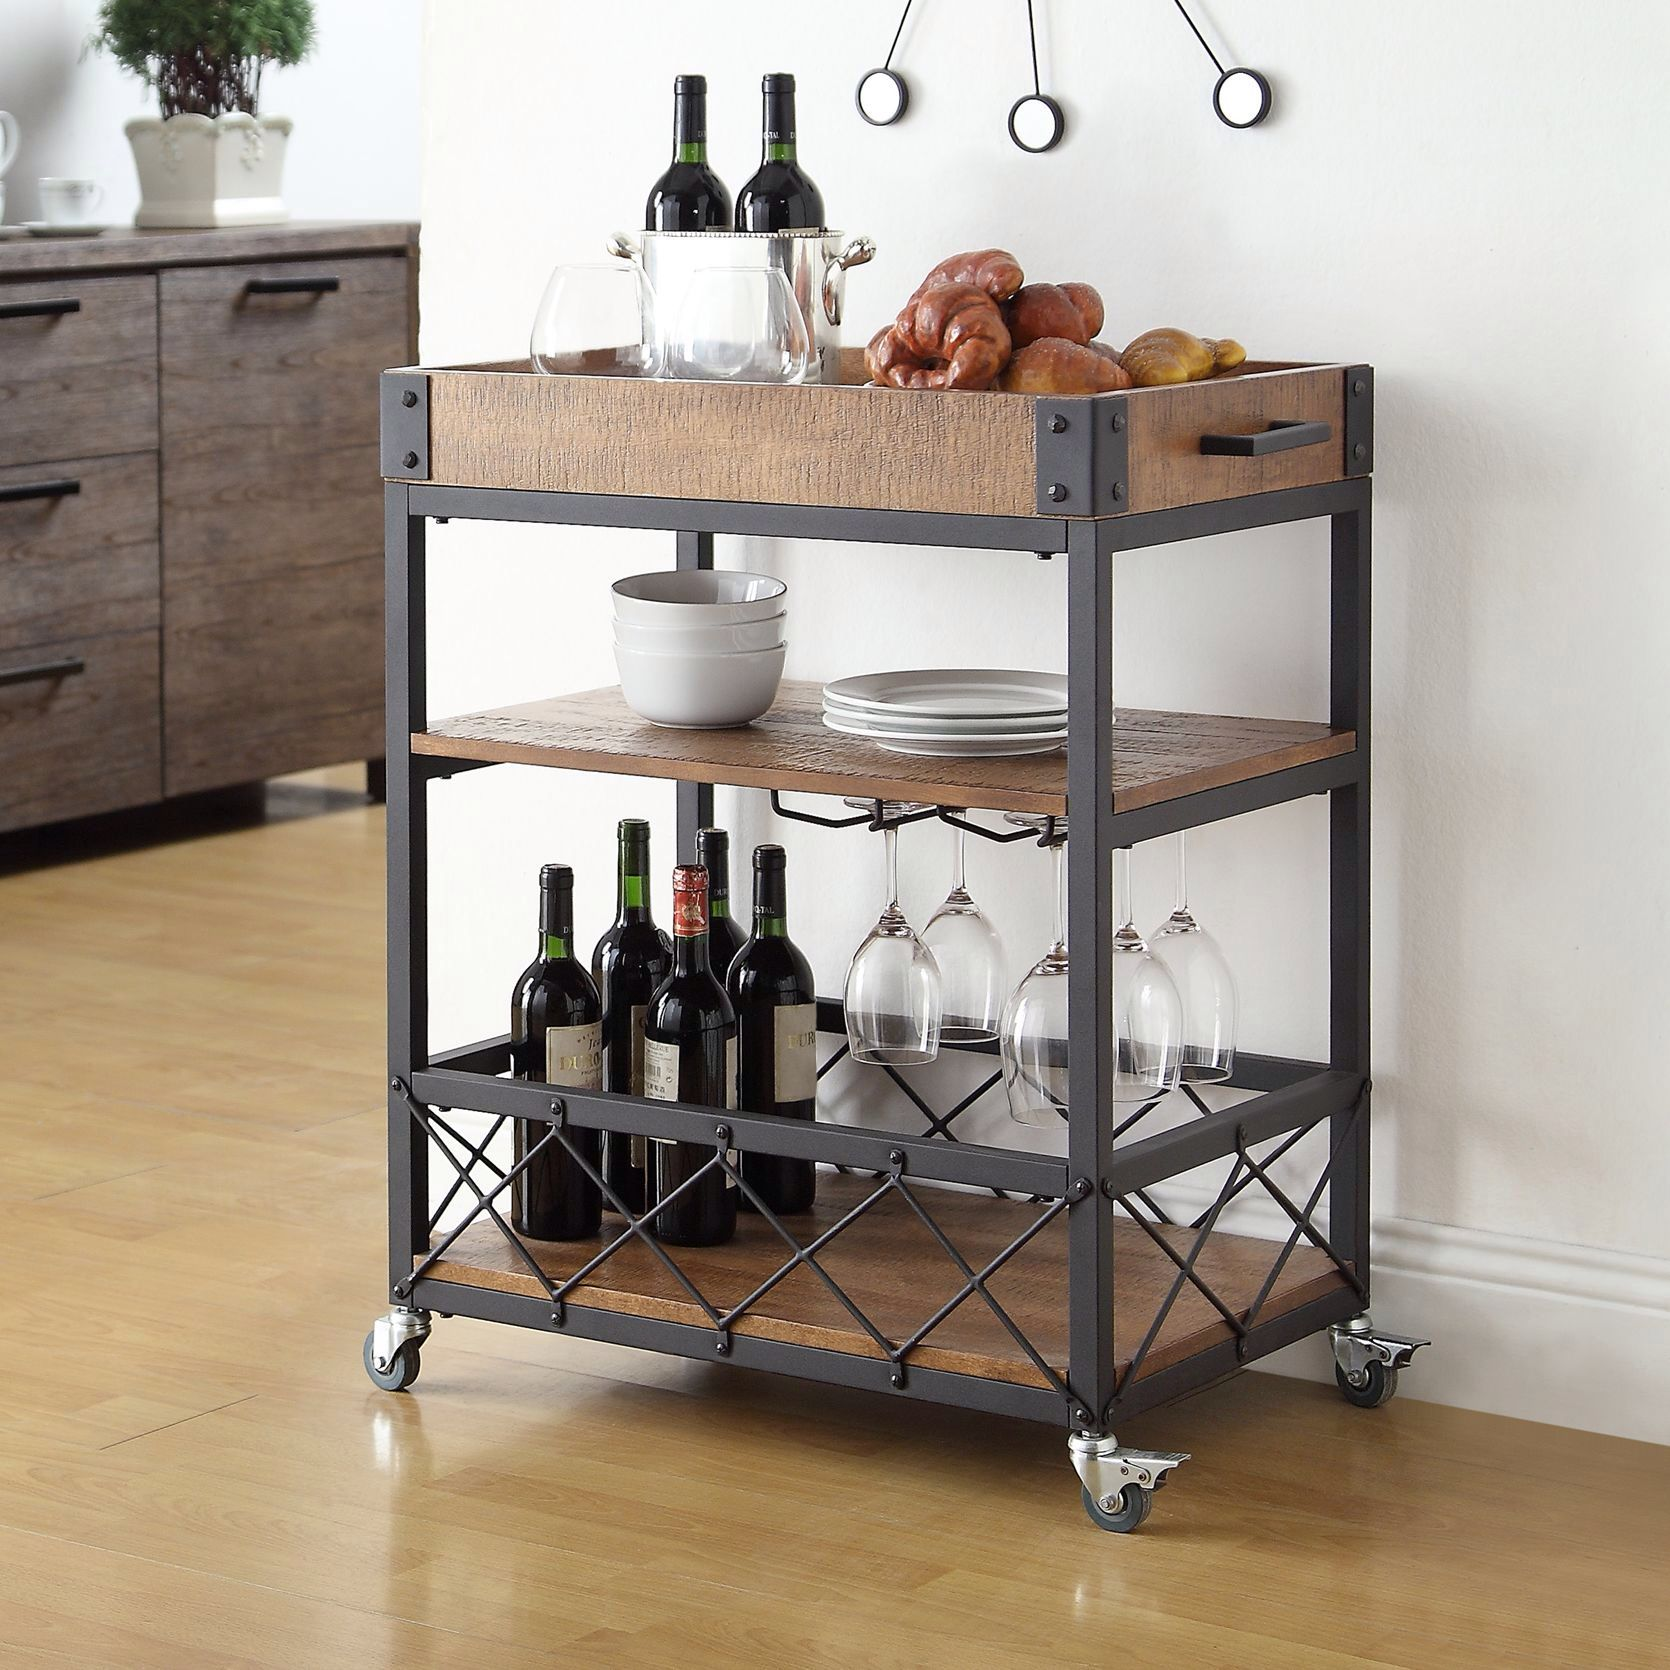 Eastfield Kitchen Cart with Wood Top Cottage